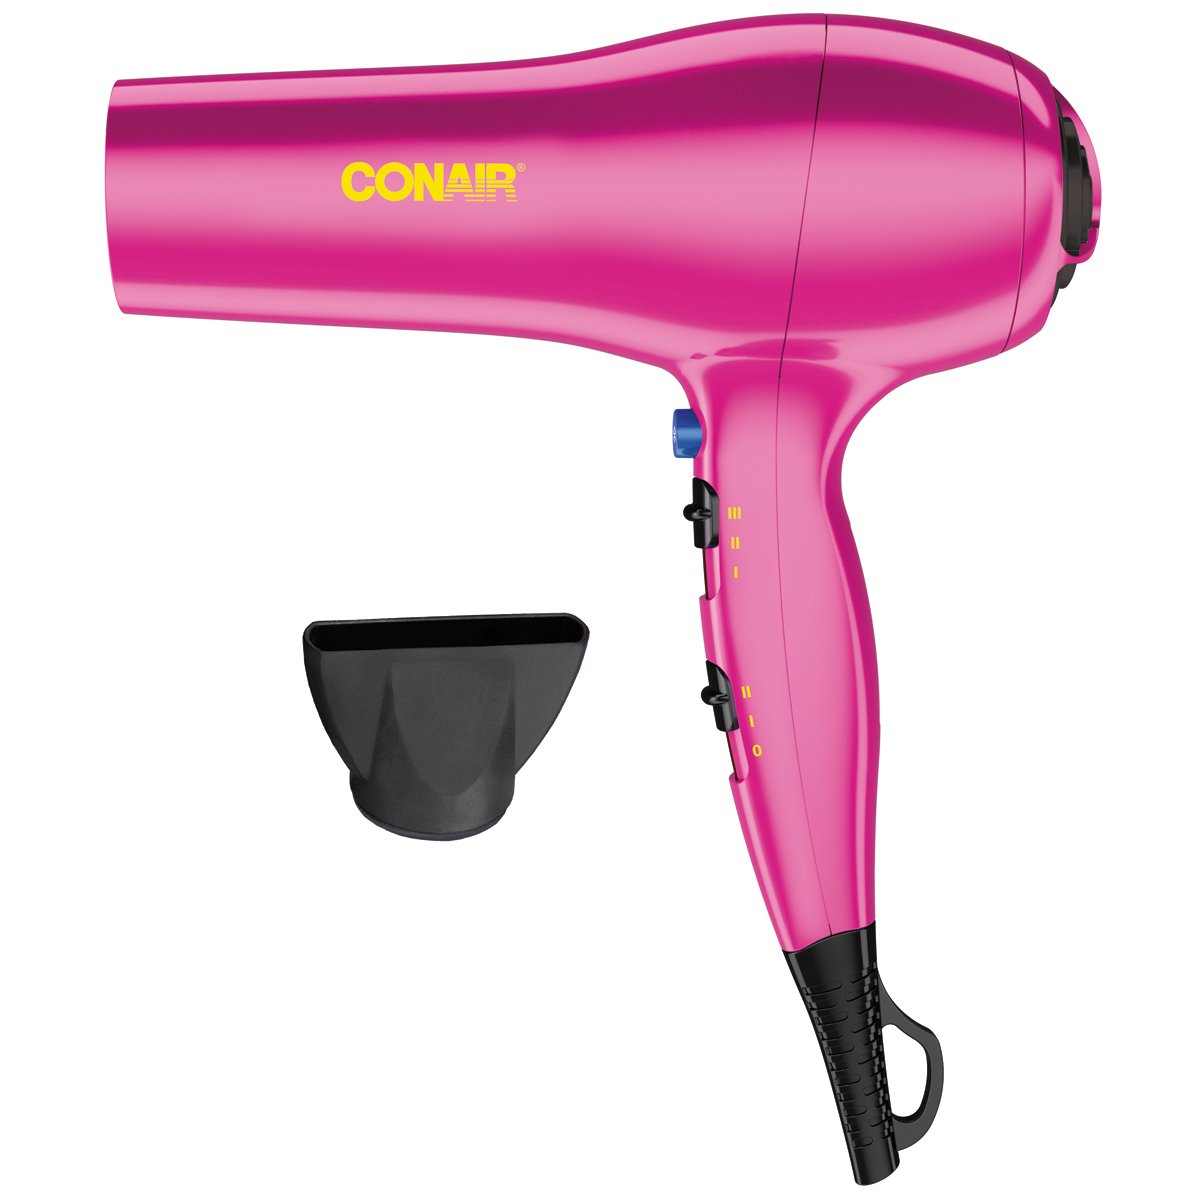 InfinitiPro by Conair Infintipro by conair 1875 watt full size hair dryer, 1 count, 1 count Conair Canada ca personal care appliances COPQD